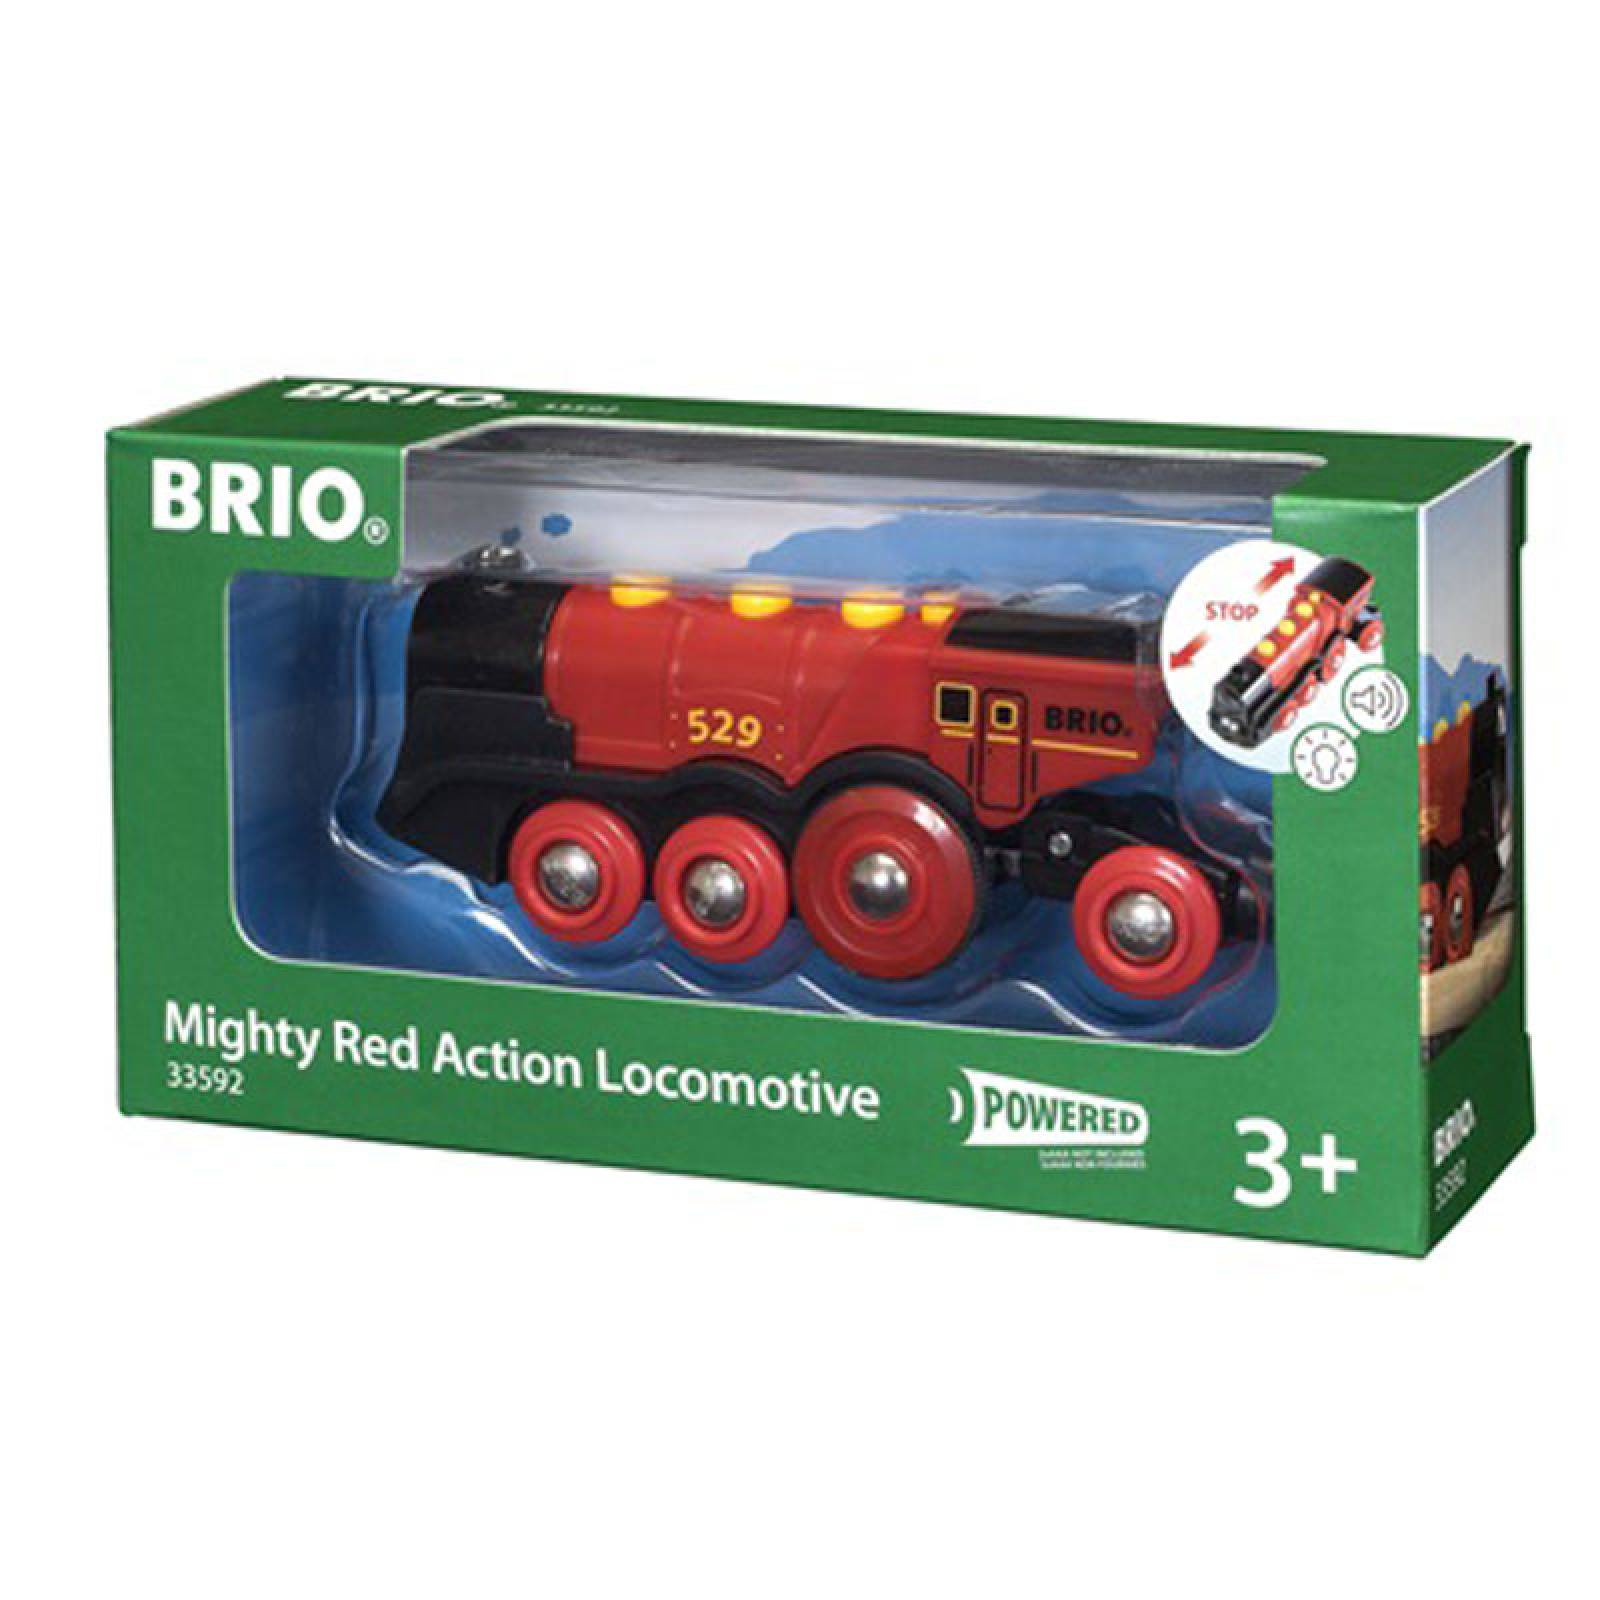 Mighty Red Action Locomotive Train BRIO® Wooden Railway Age 3+ thumbnails